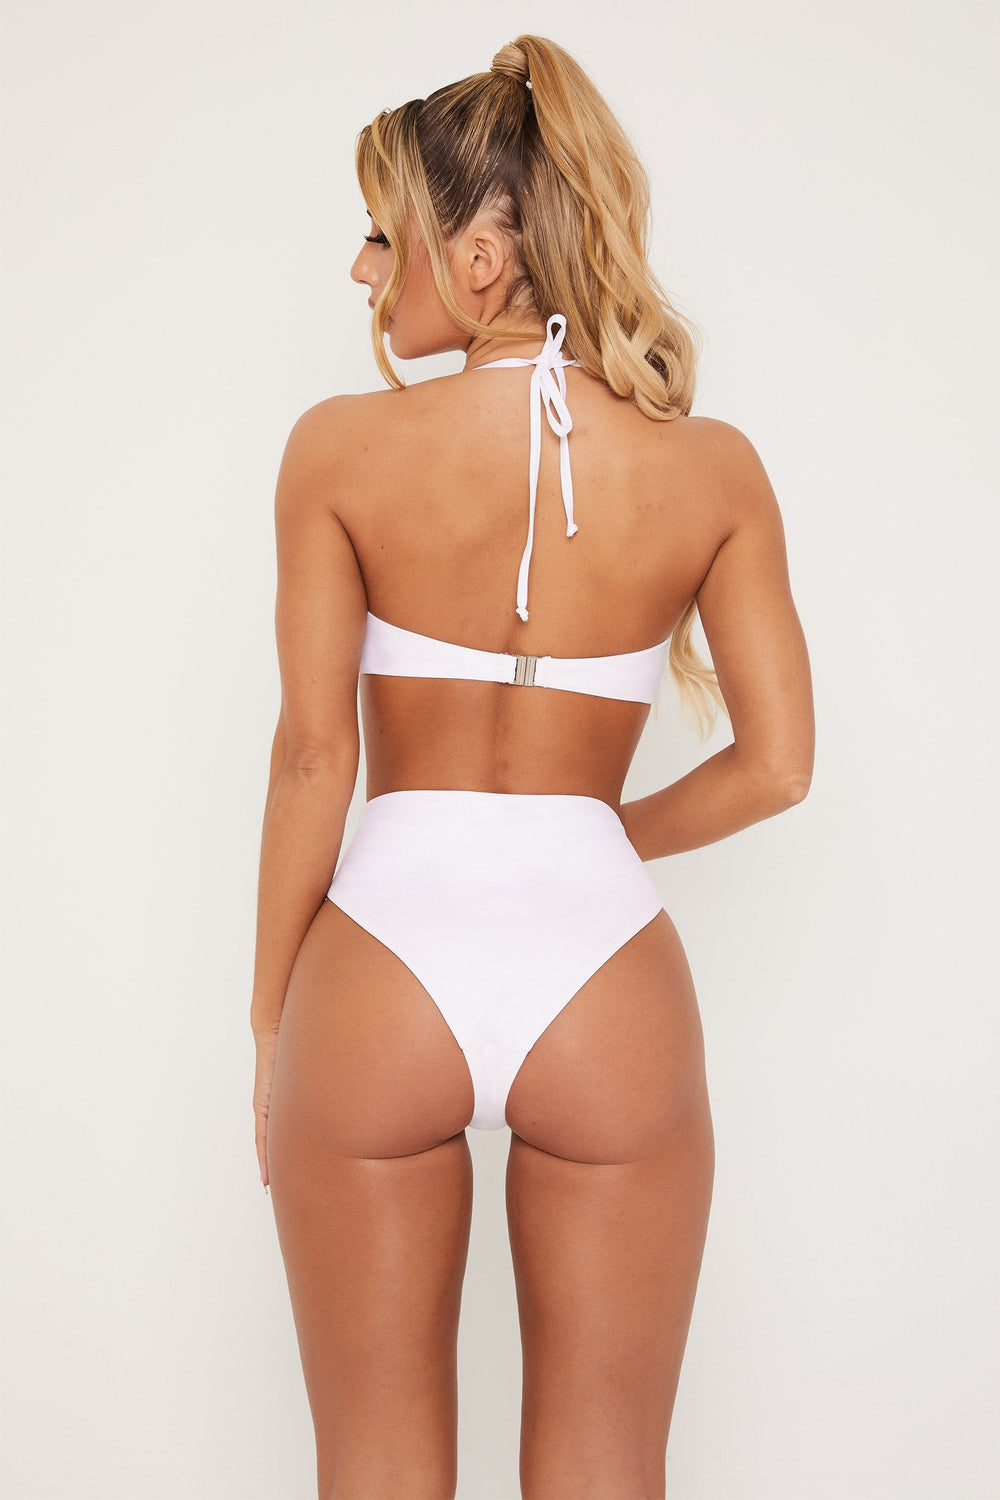 Maleah High Waisted Cut Out Bikini Bottom - White - MESHKI ?id=15571060850763